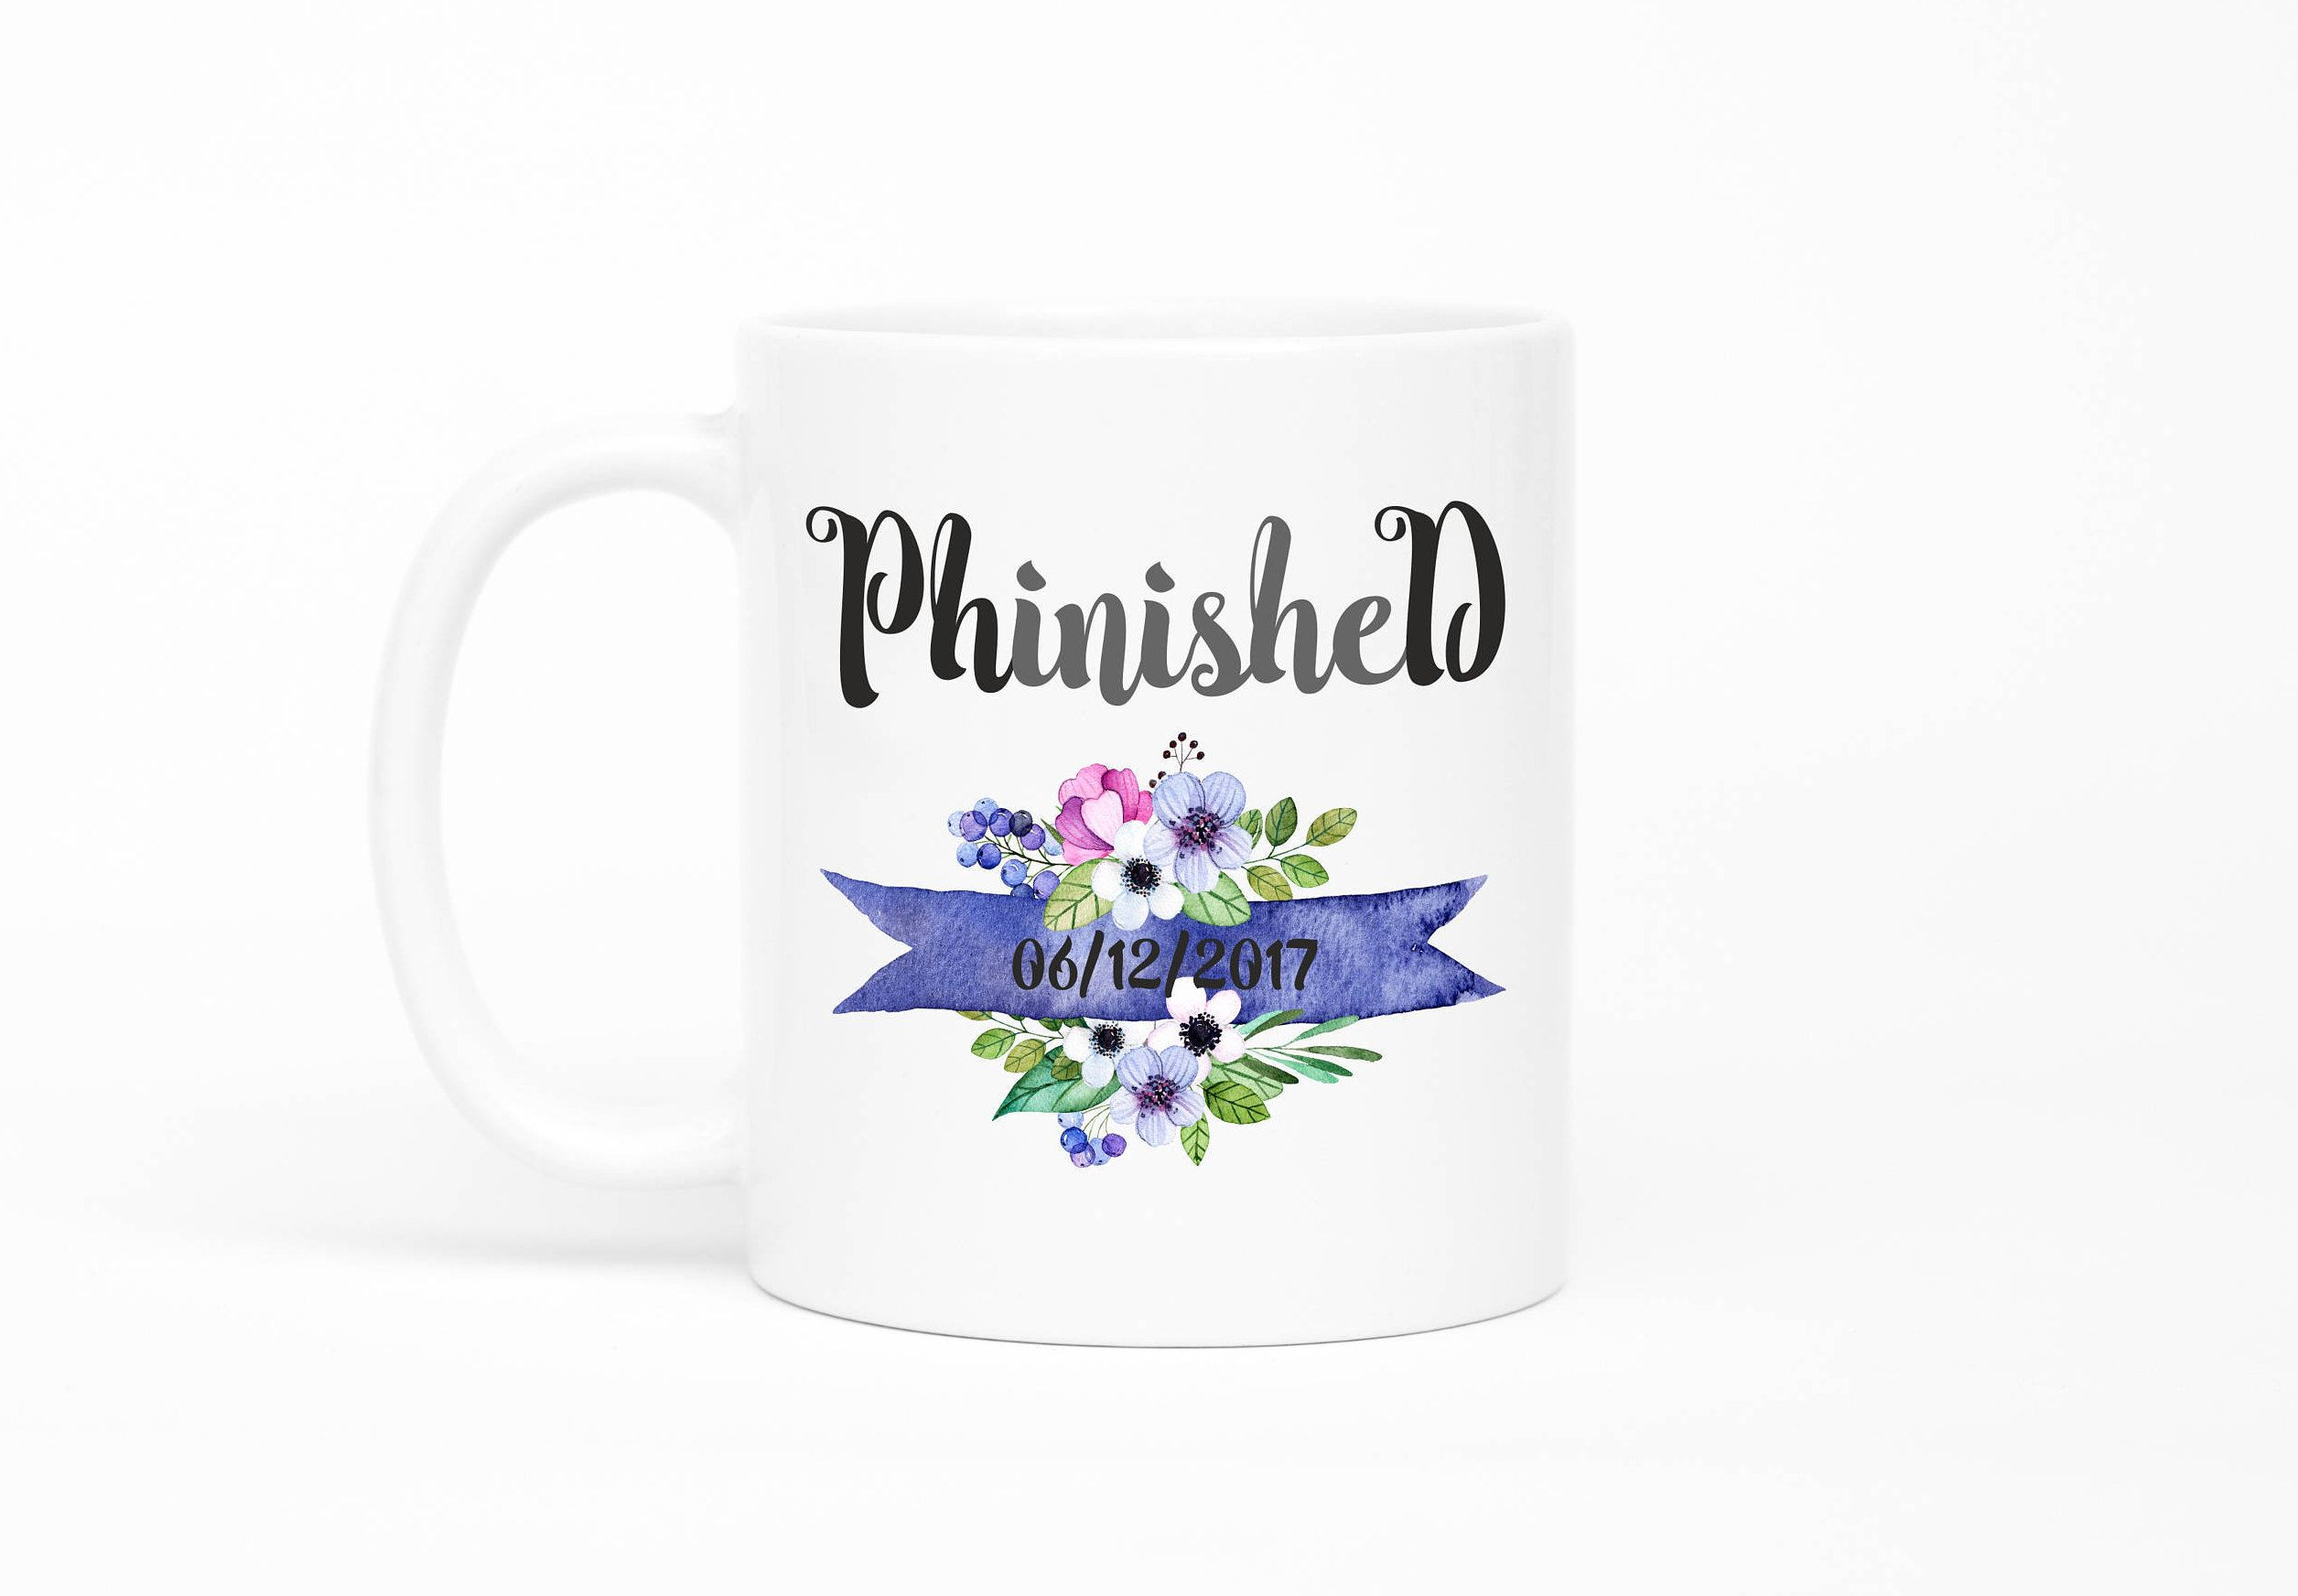 phd mugs phd gift gift for phd phd gifts graduation gift phd